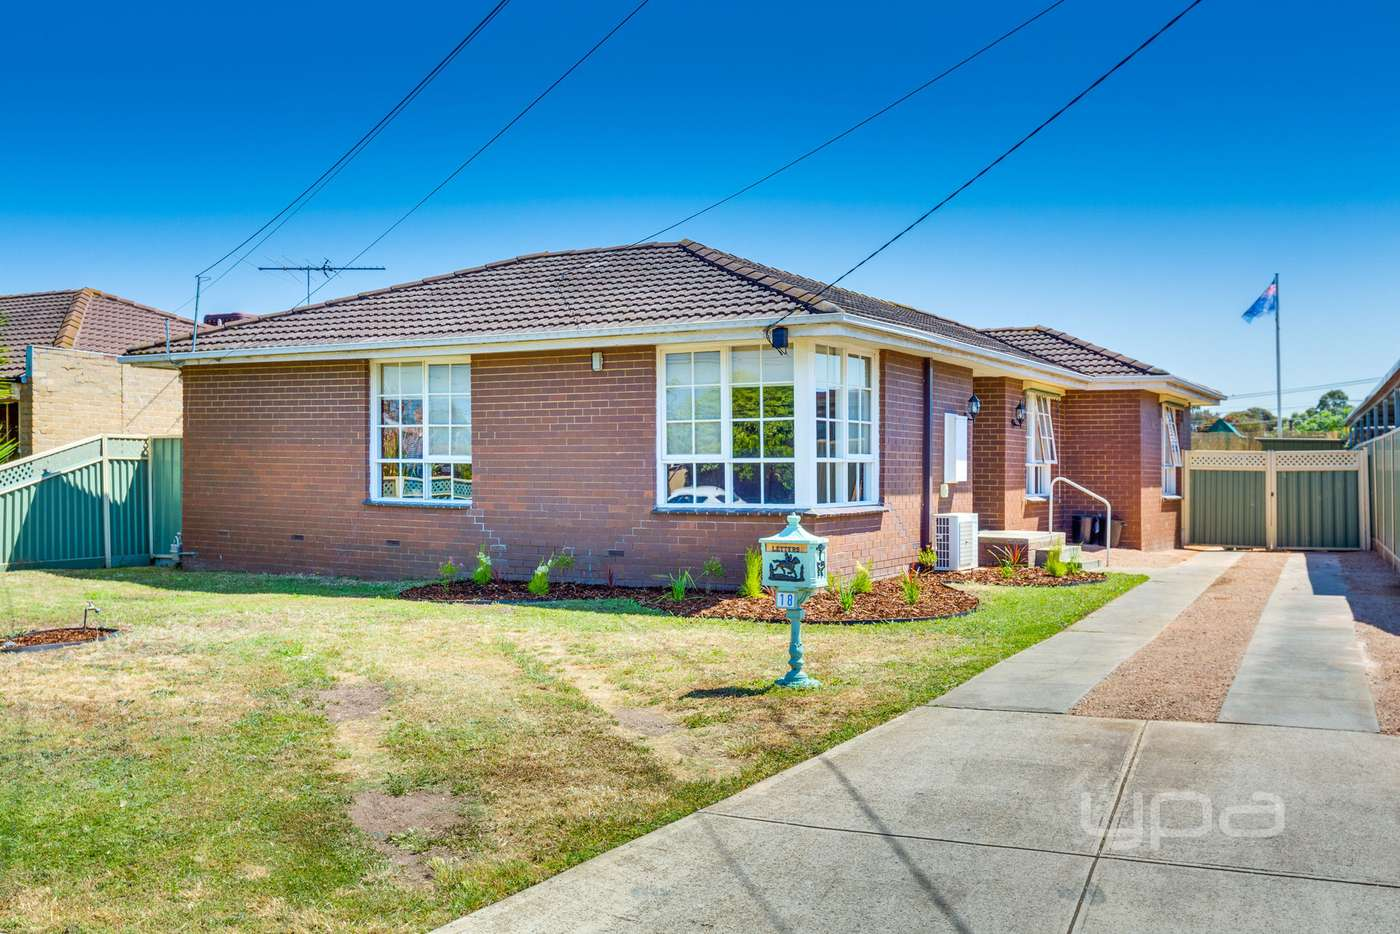 Main view of Homely house listing, 18 Greenwood Street, Wyndham Vale VIC 3024